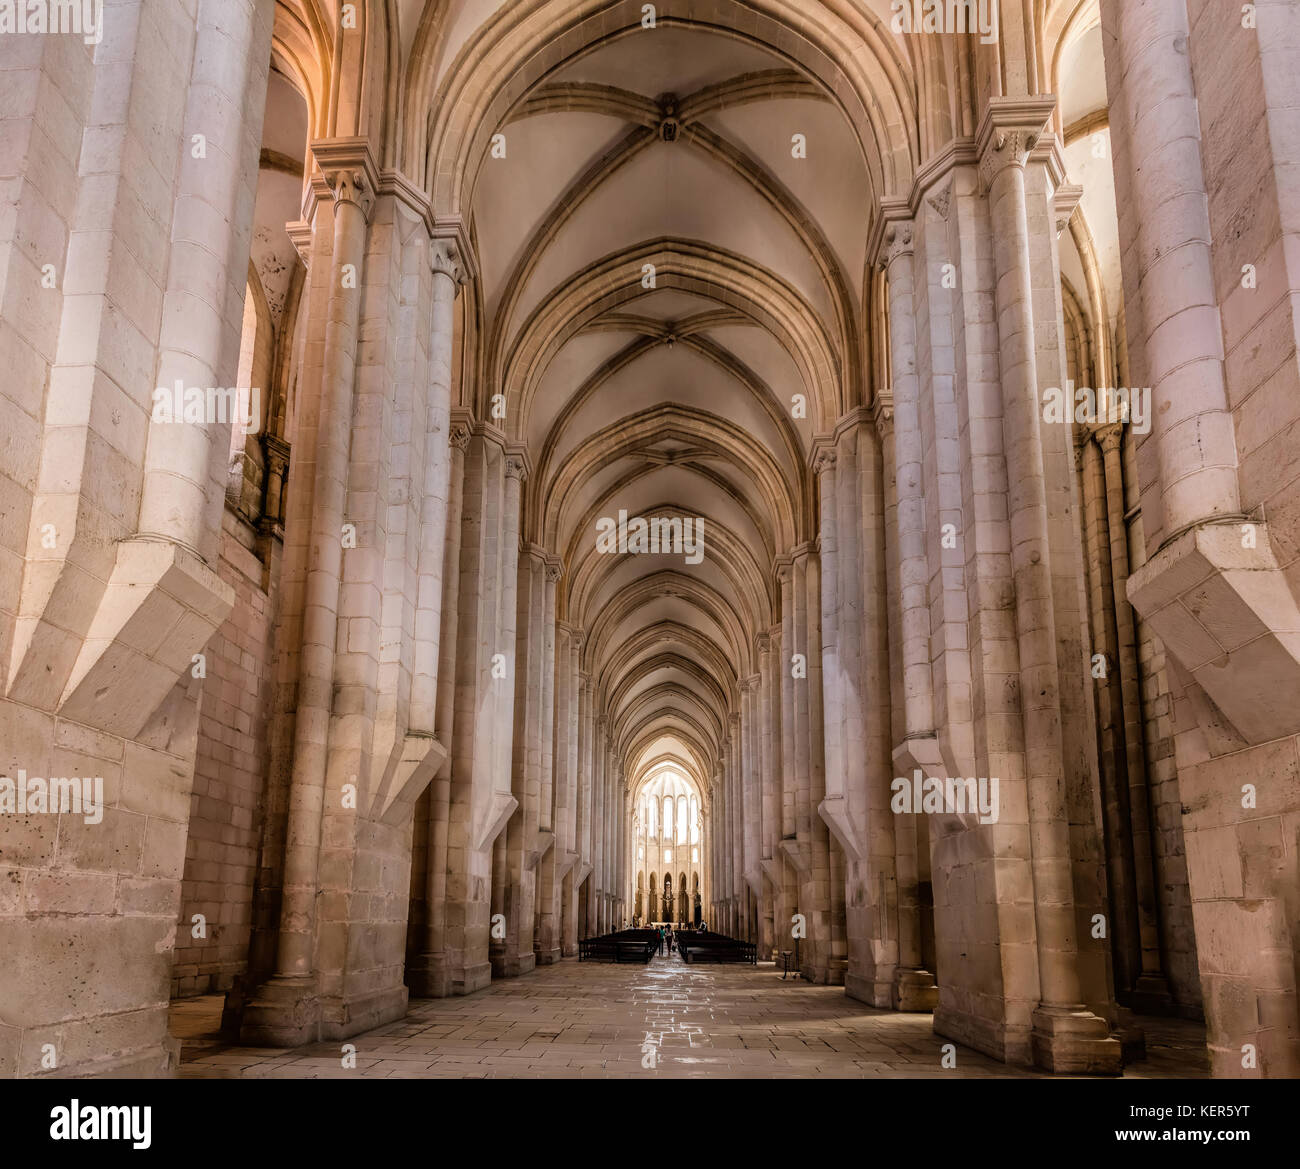 View towards the main chapel and ambulatory of the medieval Alcobaca Monastery, the first truly Gothic building - Stock Image